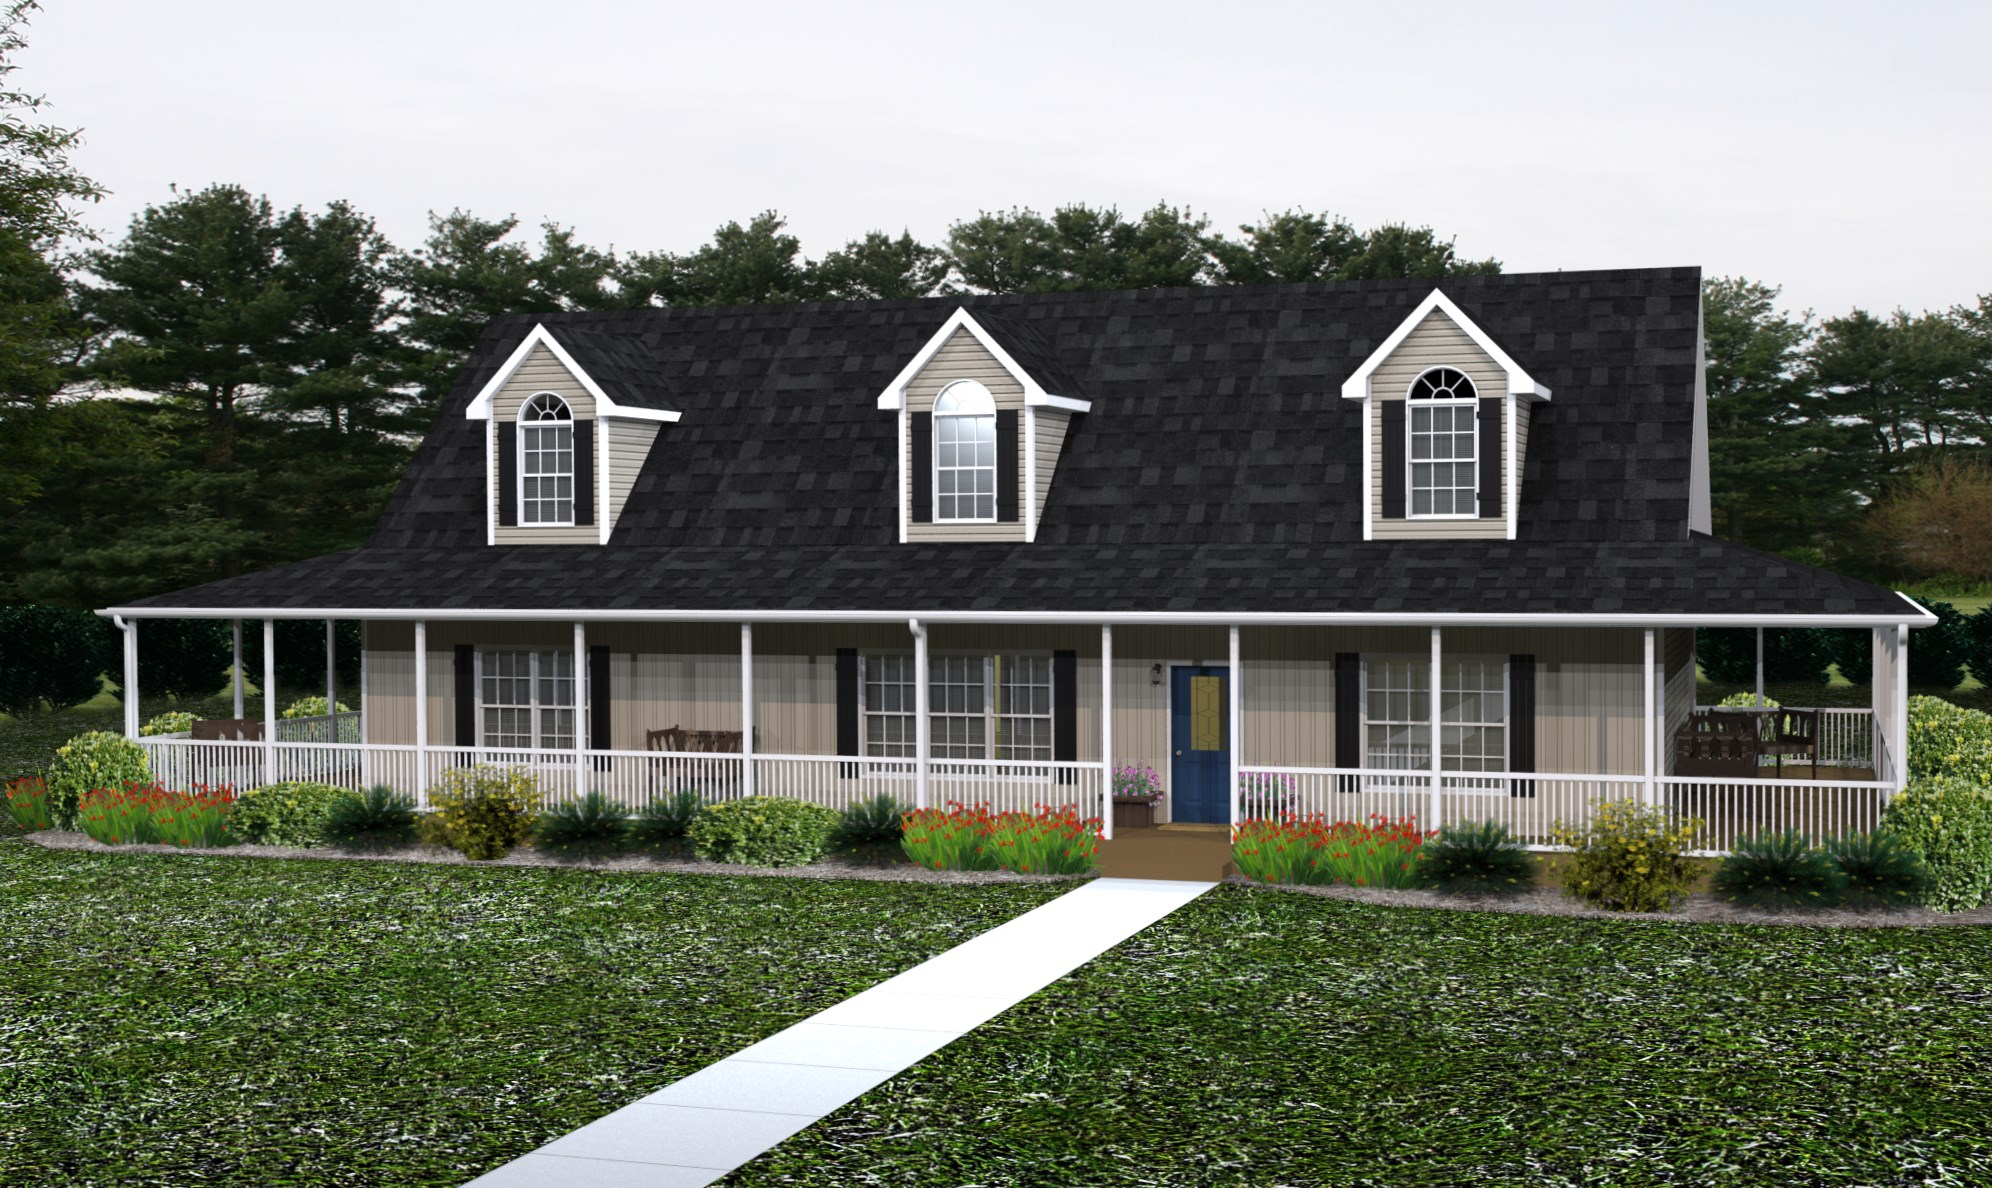 Mocksville Modular Homes | Selectmodular.com on open sale, storage sale, construction sale, design sale, online sale,